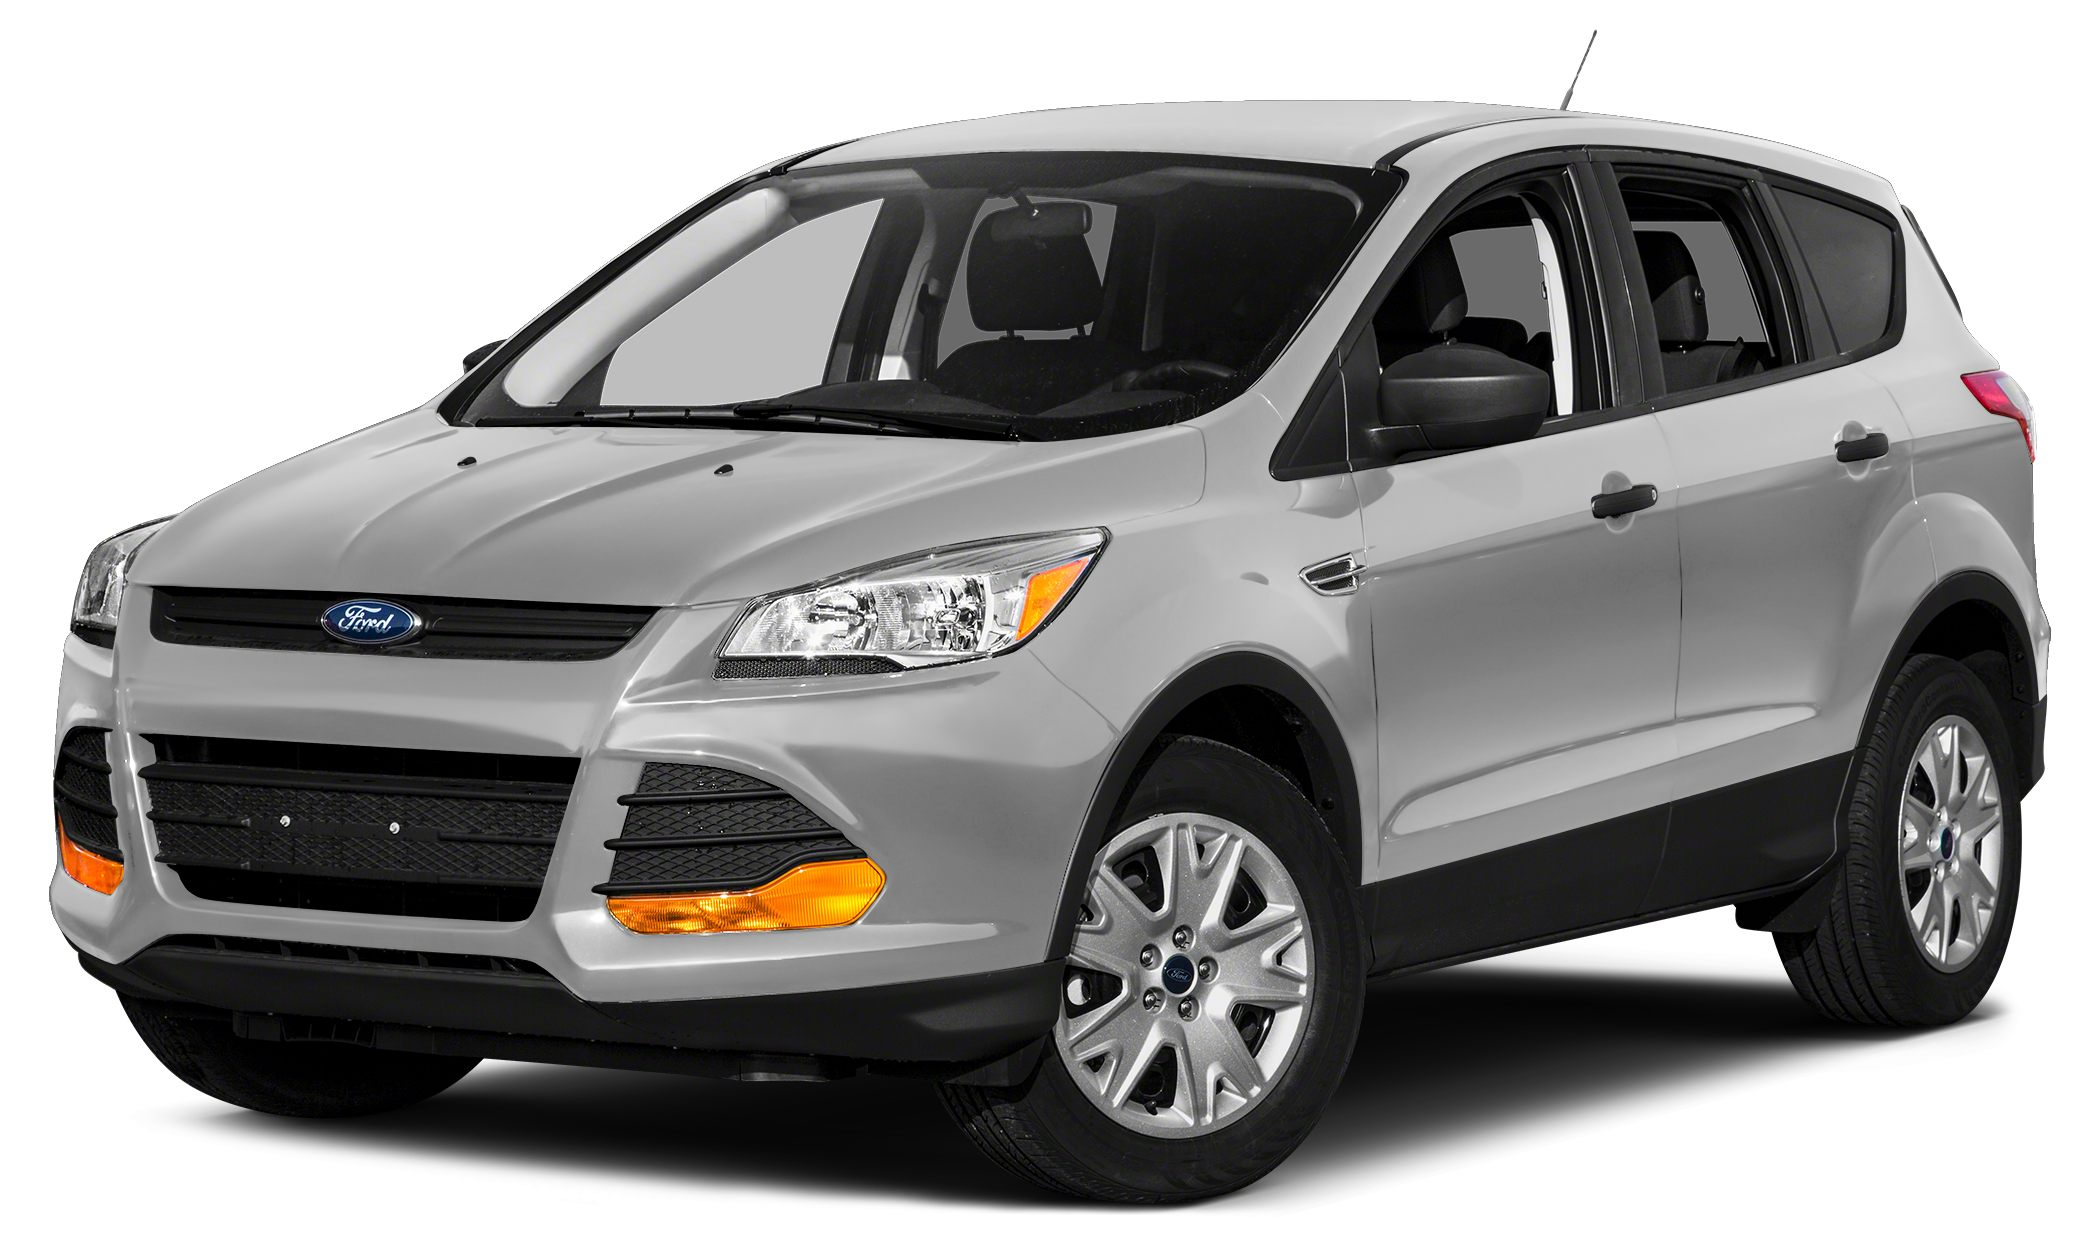 2014 Ford Escape SE Call JOHNNY PEREZ at 866-292-7304 for more information and a appointment time